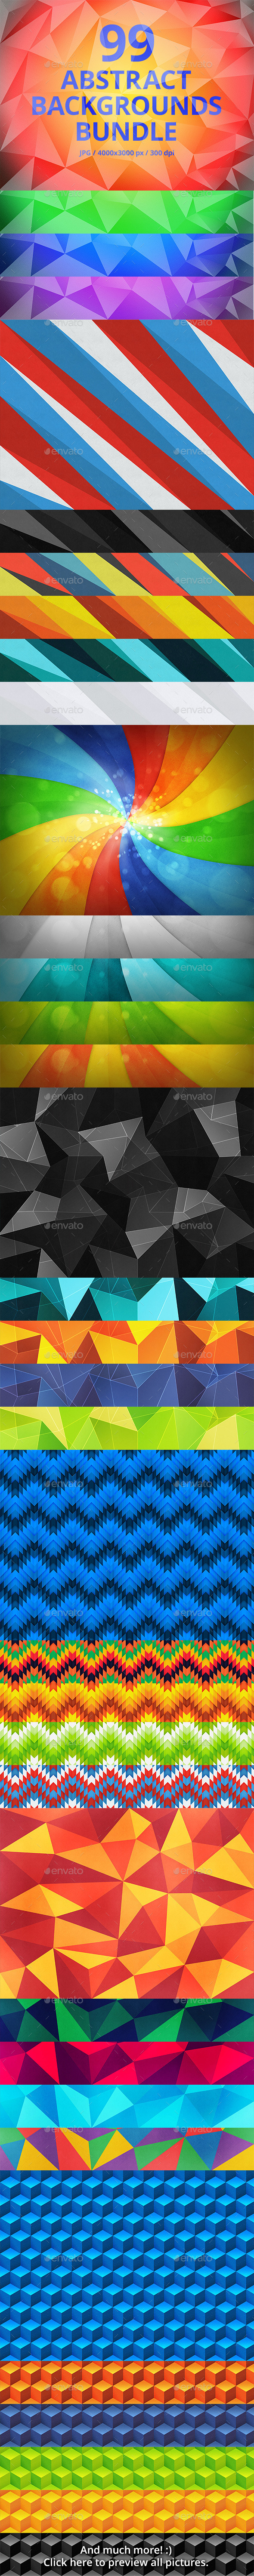 99 Abstract Backgrounds Bundle - Abstract Backgrounds